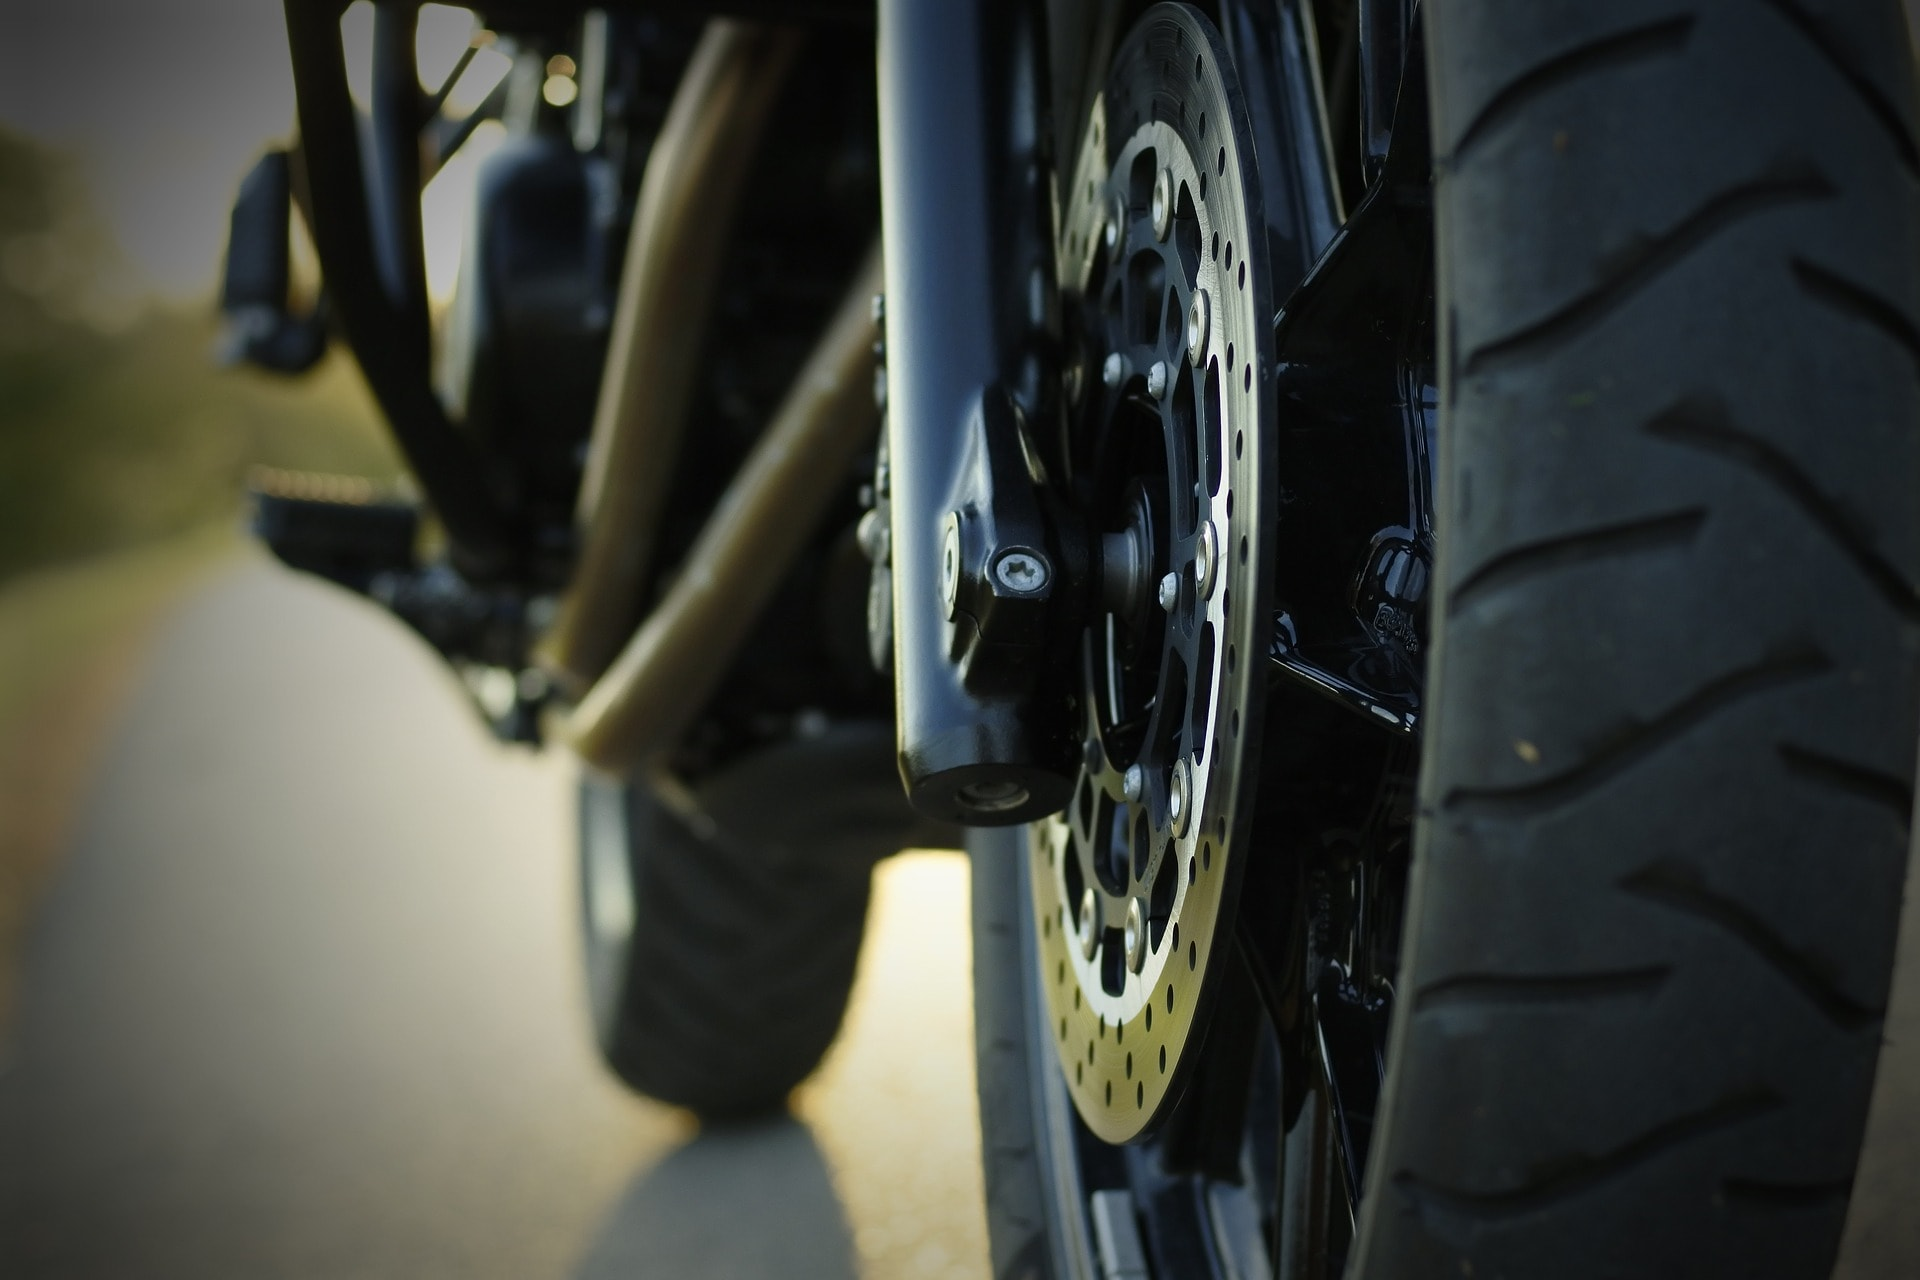 Tire view of a motorcycle. Who takes more braking distance?